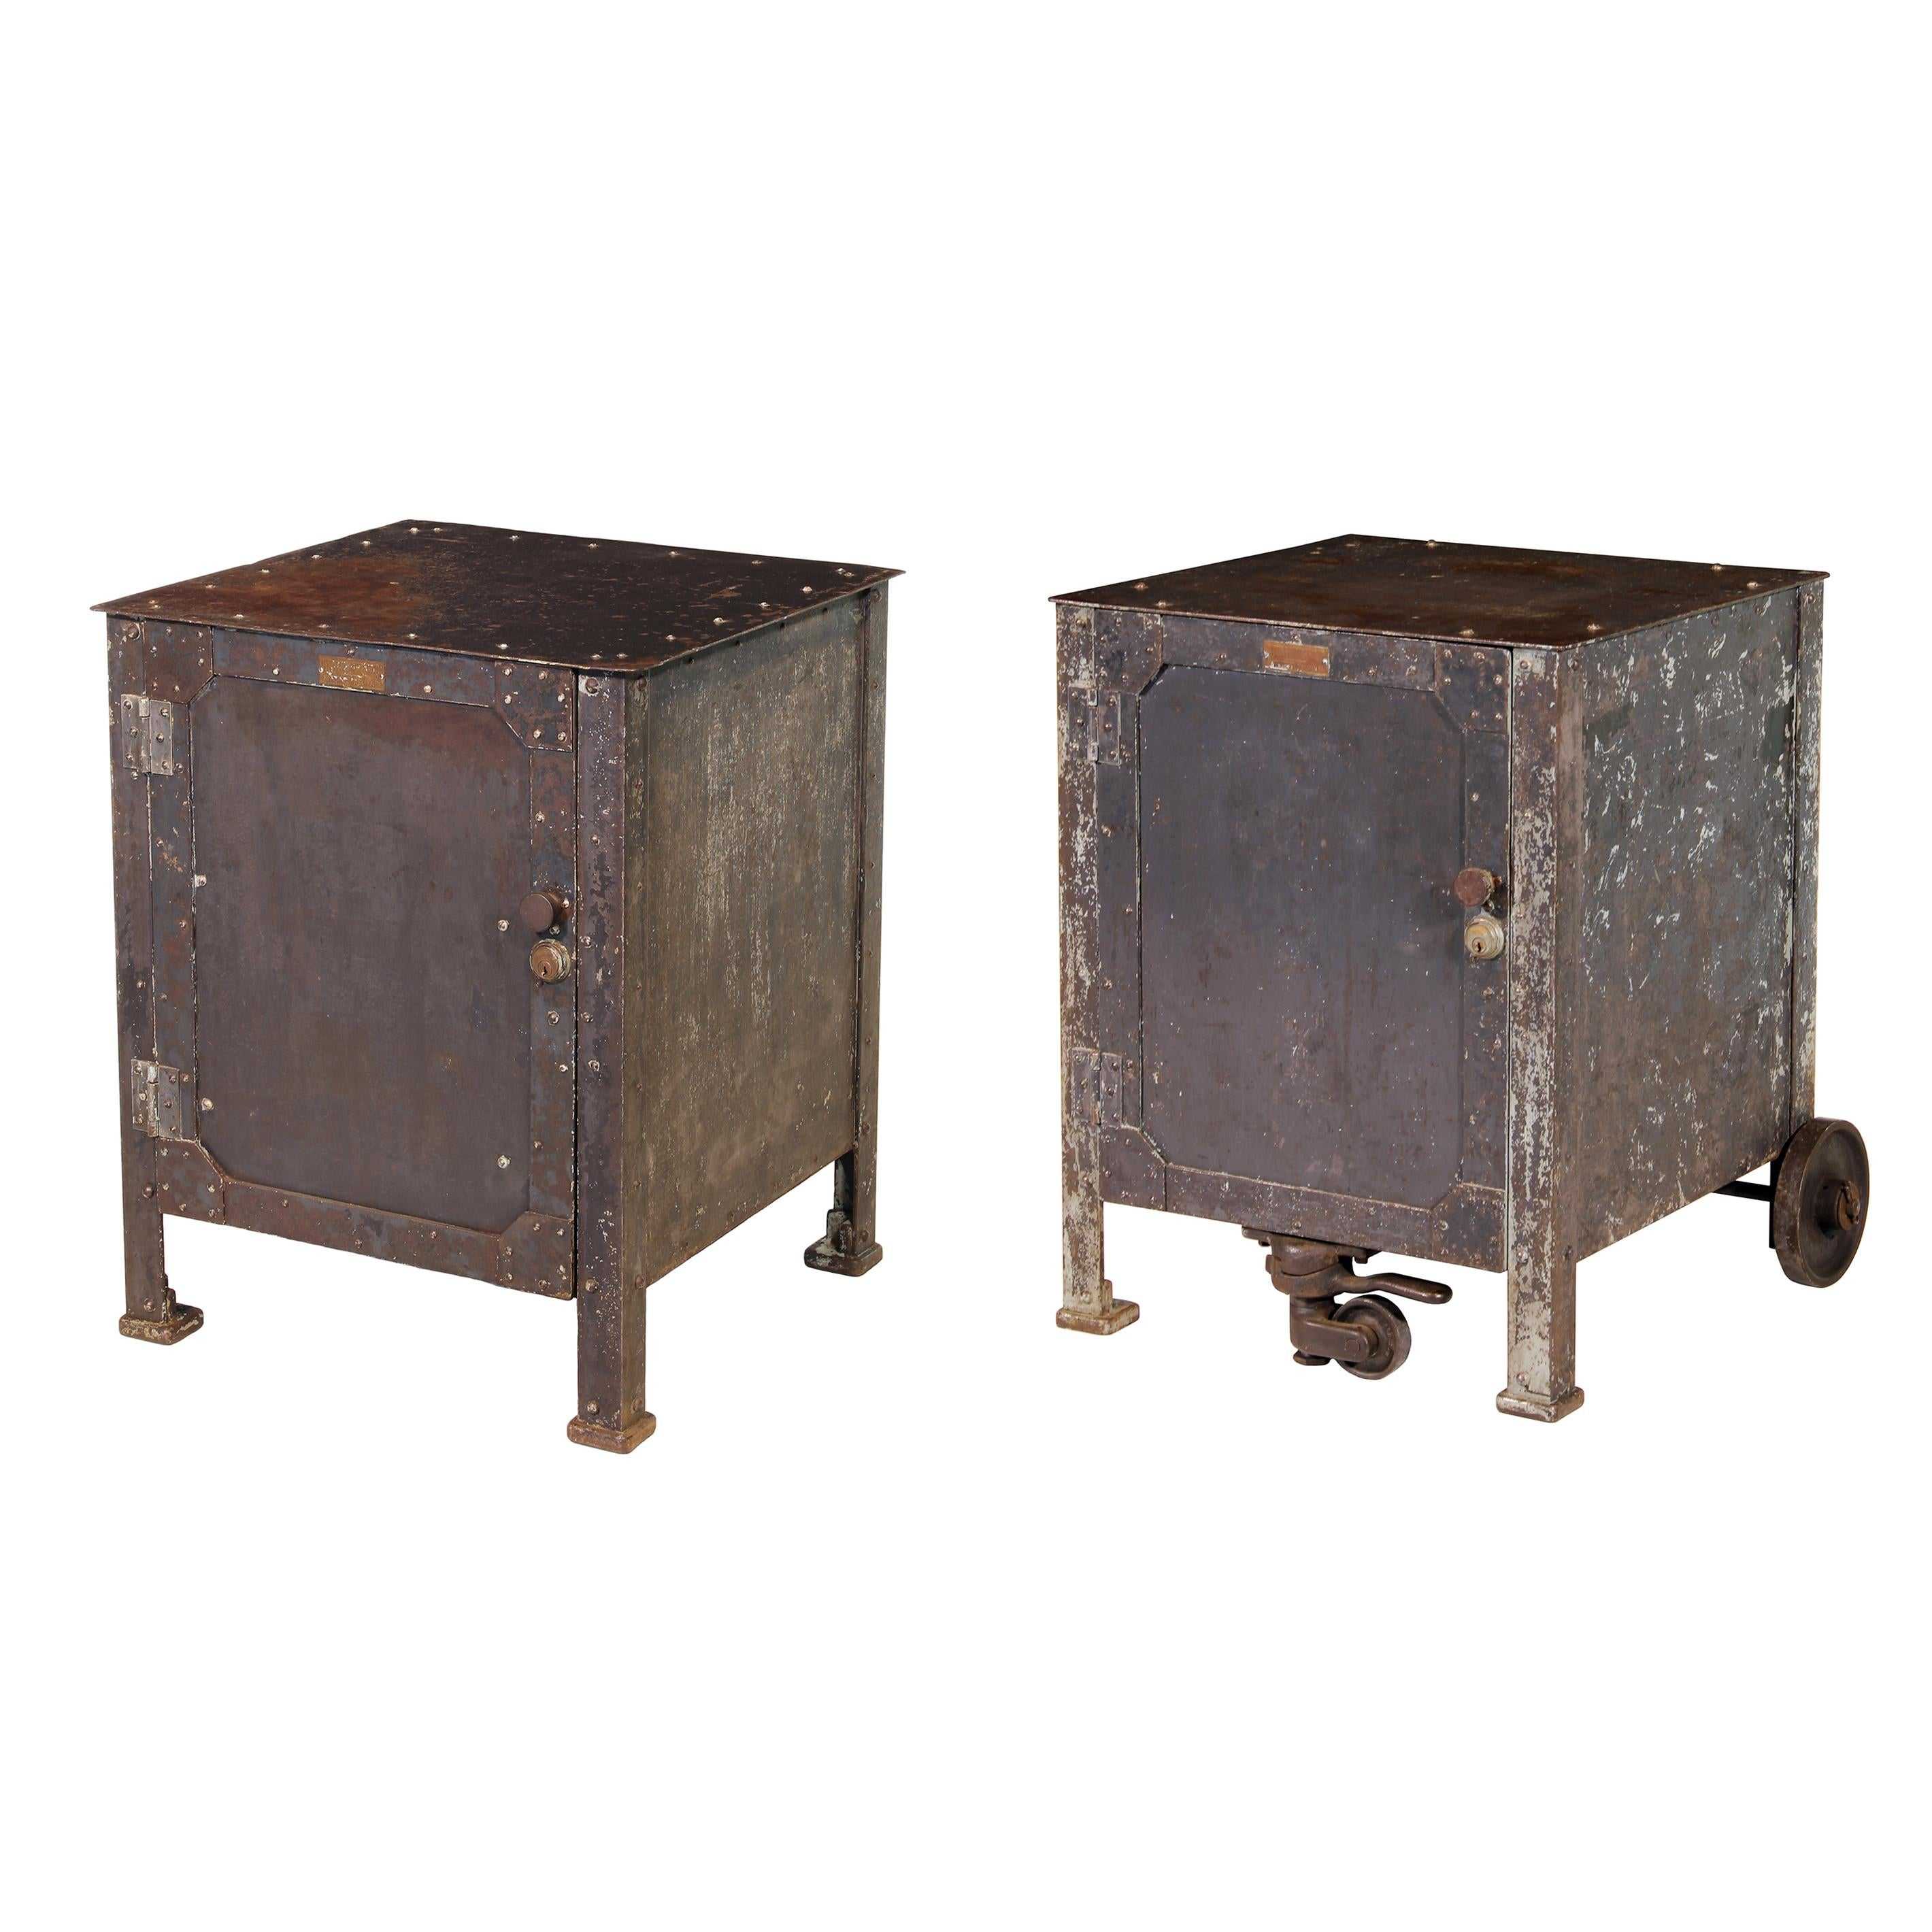 Pair Of Vintage Industrial Bedside Tables Nightstands For Sale At 1stdibs